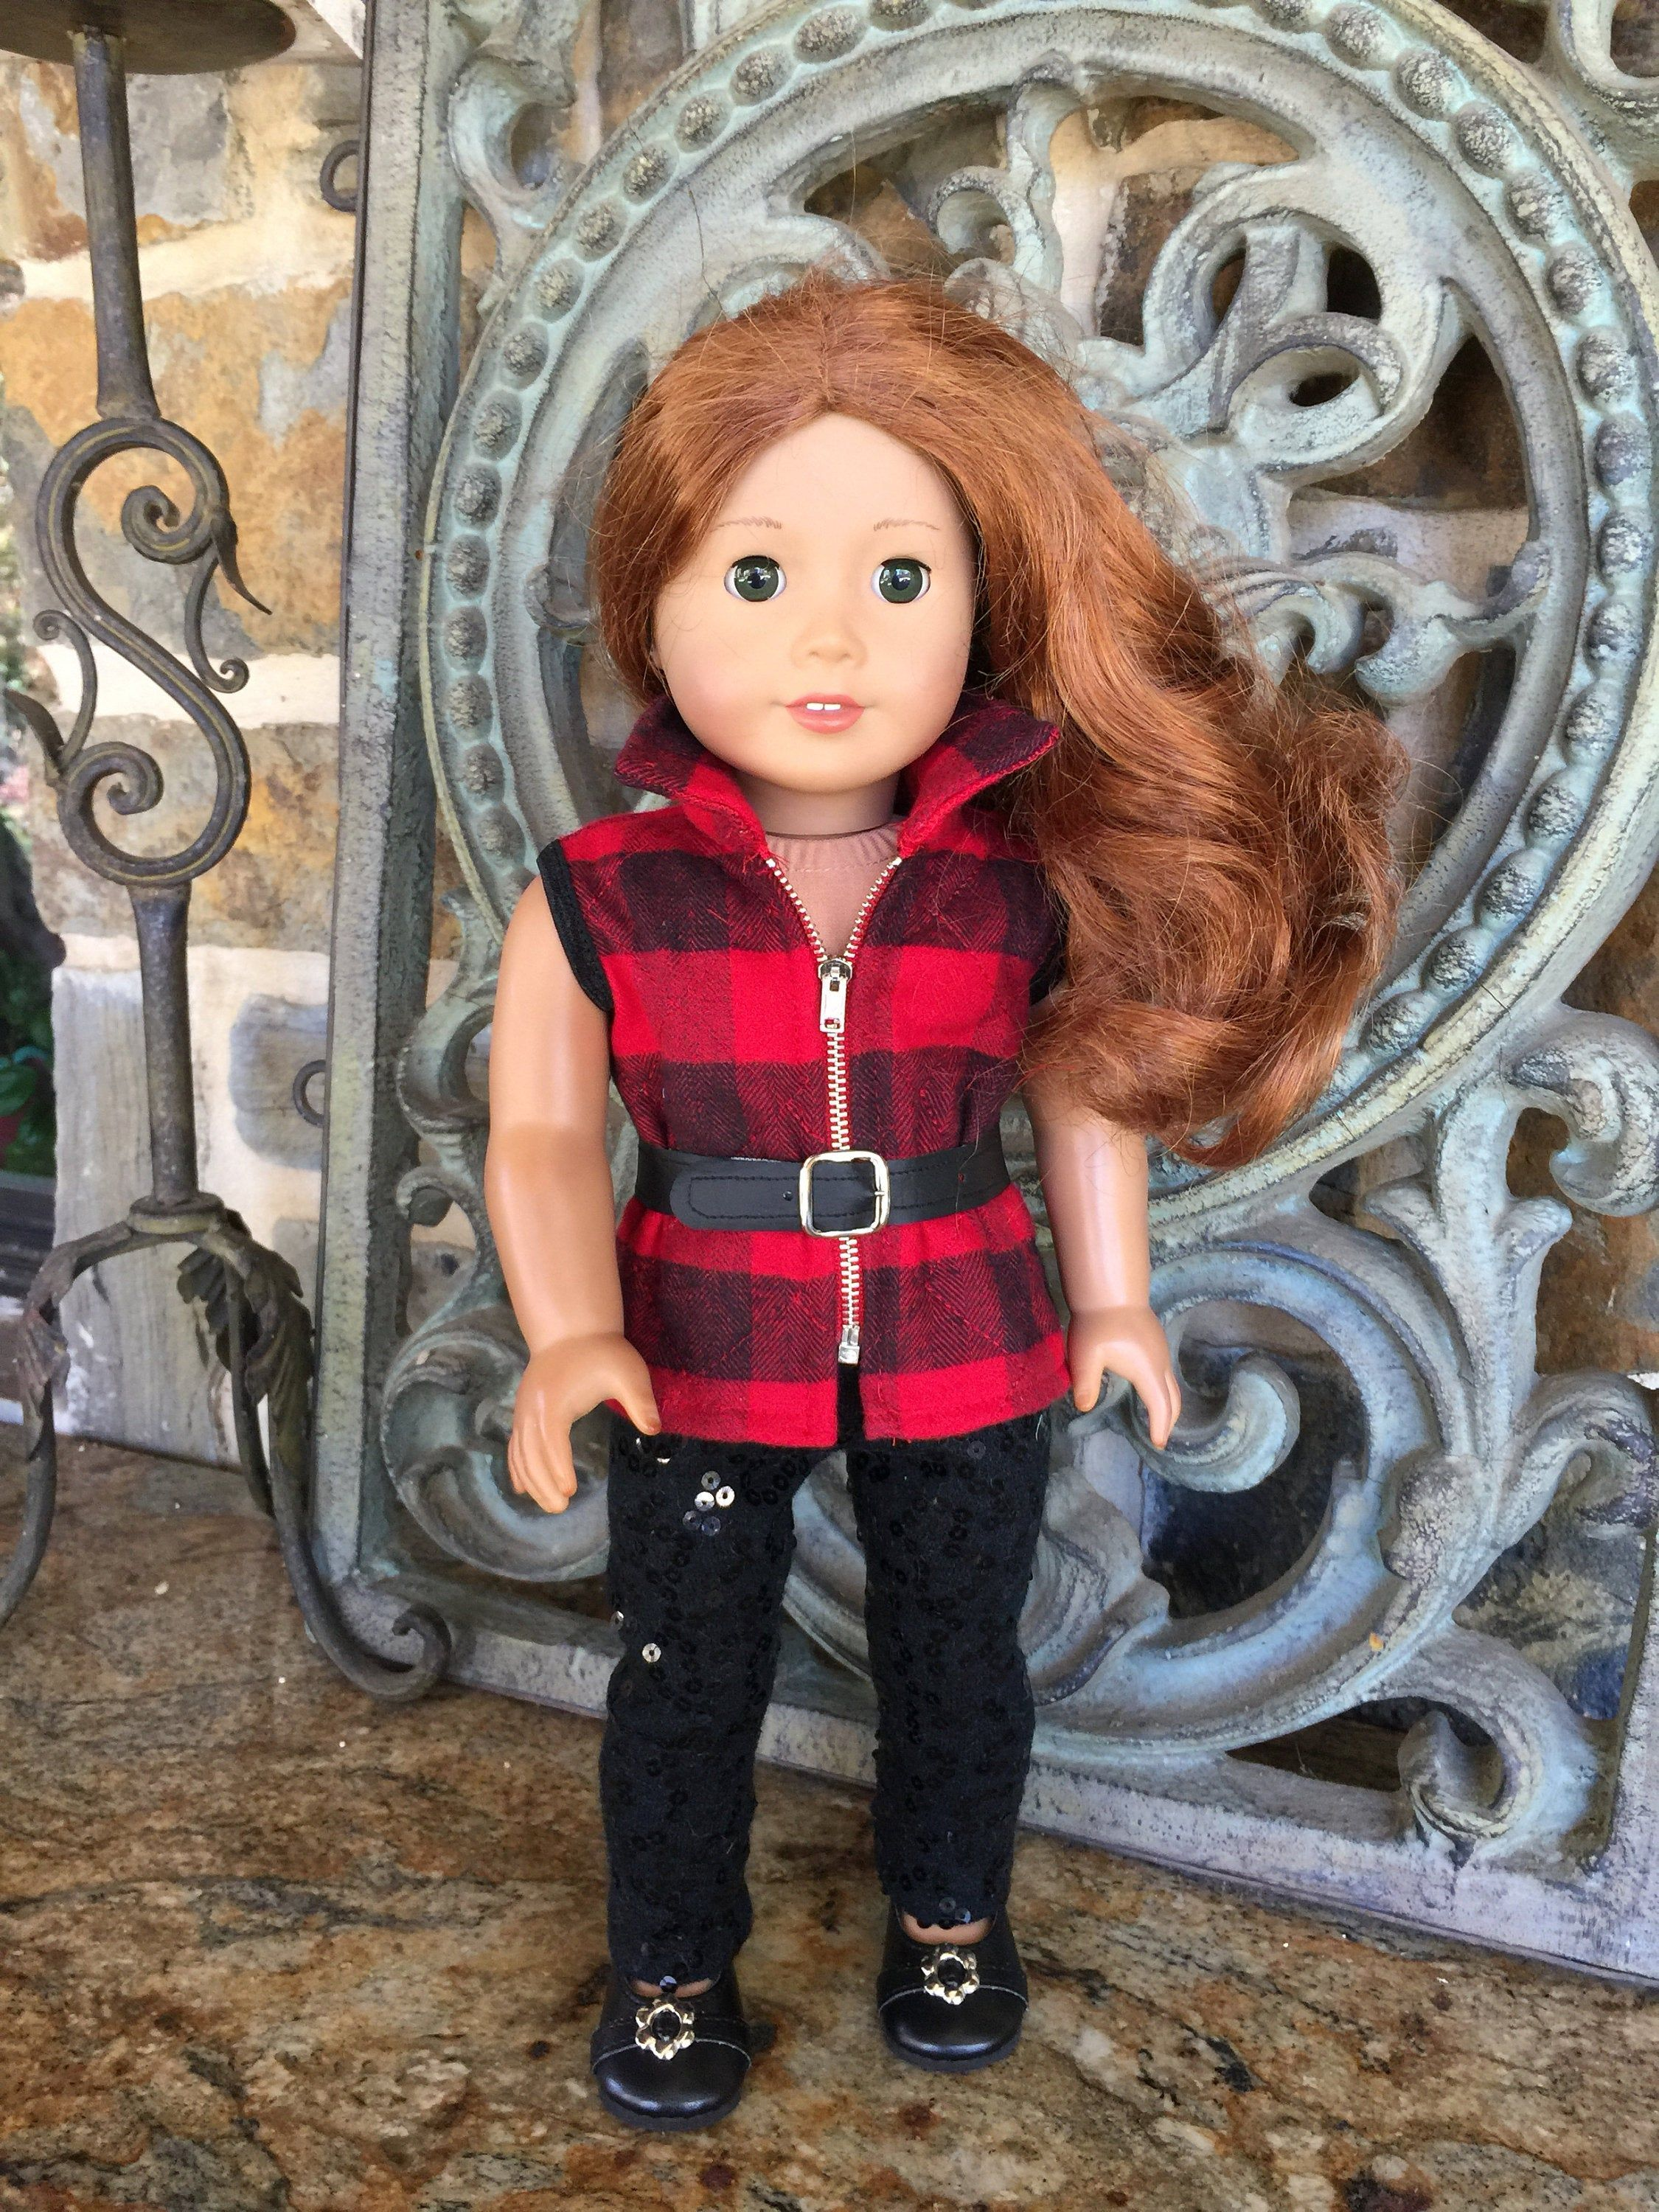 18 inch doll clothes made to fit dolls like the American Girl Doll-quilted zippered vest with collar #18inchdollsandclothes